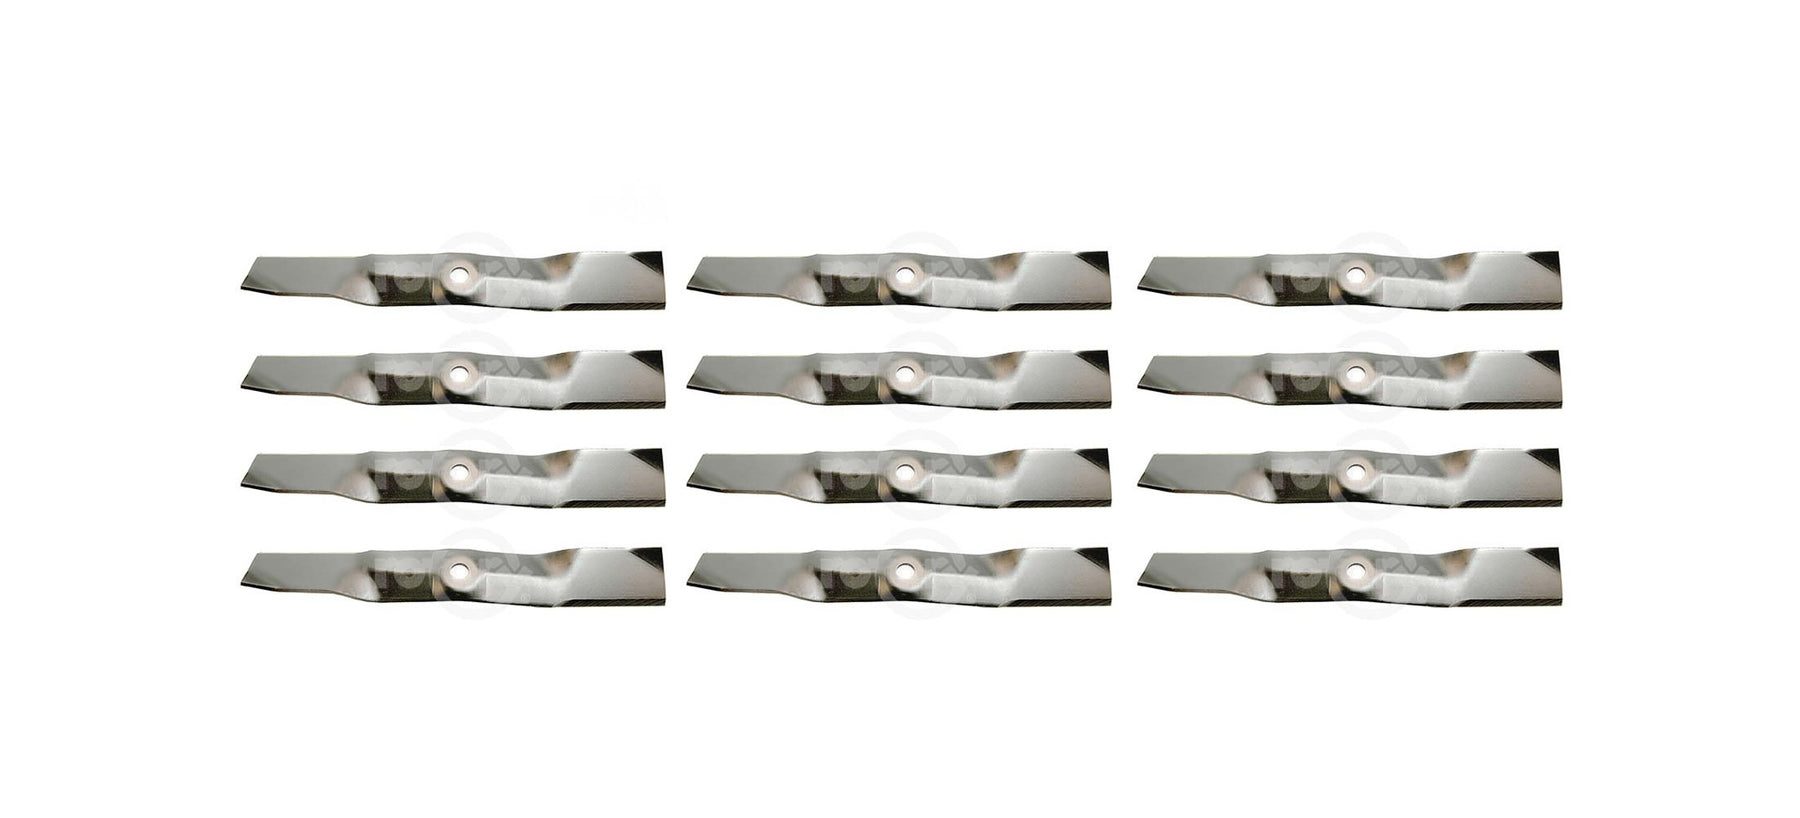 12 Pack Lawn Mower Blades Fits Windsor 50-4442